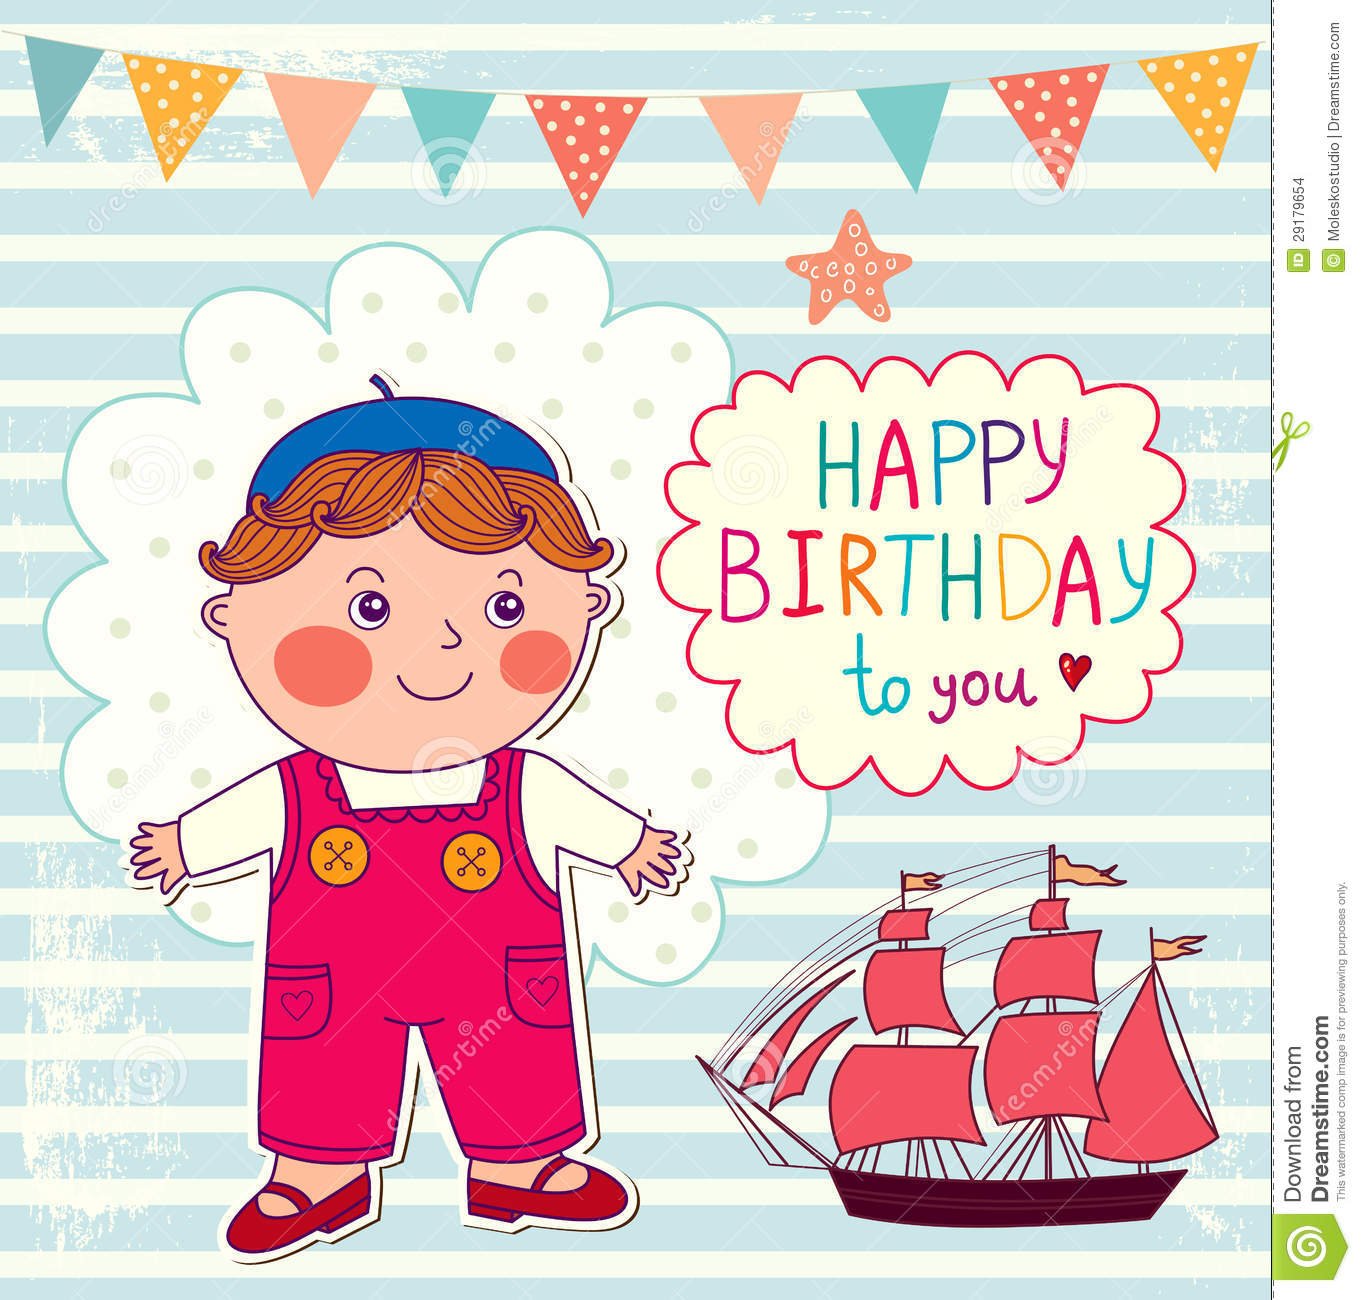 Cartoon Birthday Card Photography Image 19229092 – Cartoon Birthday Greetings